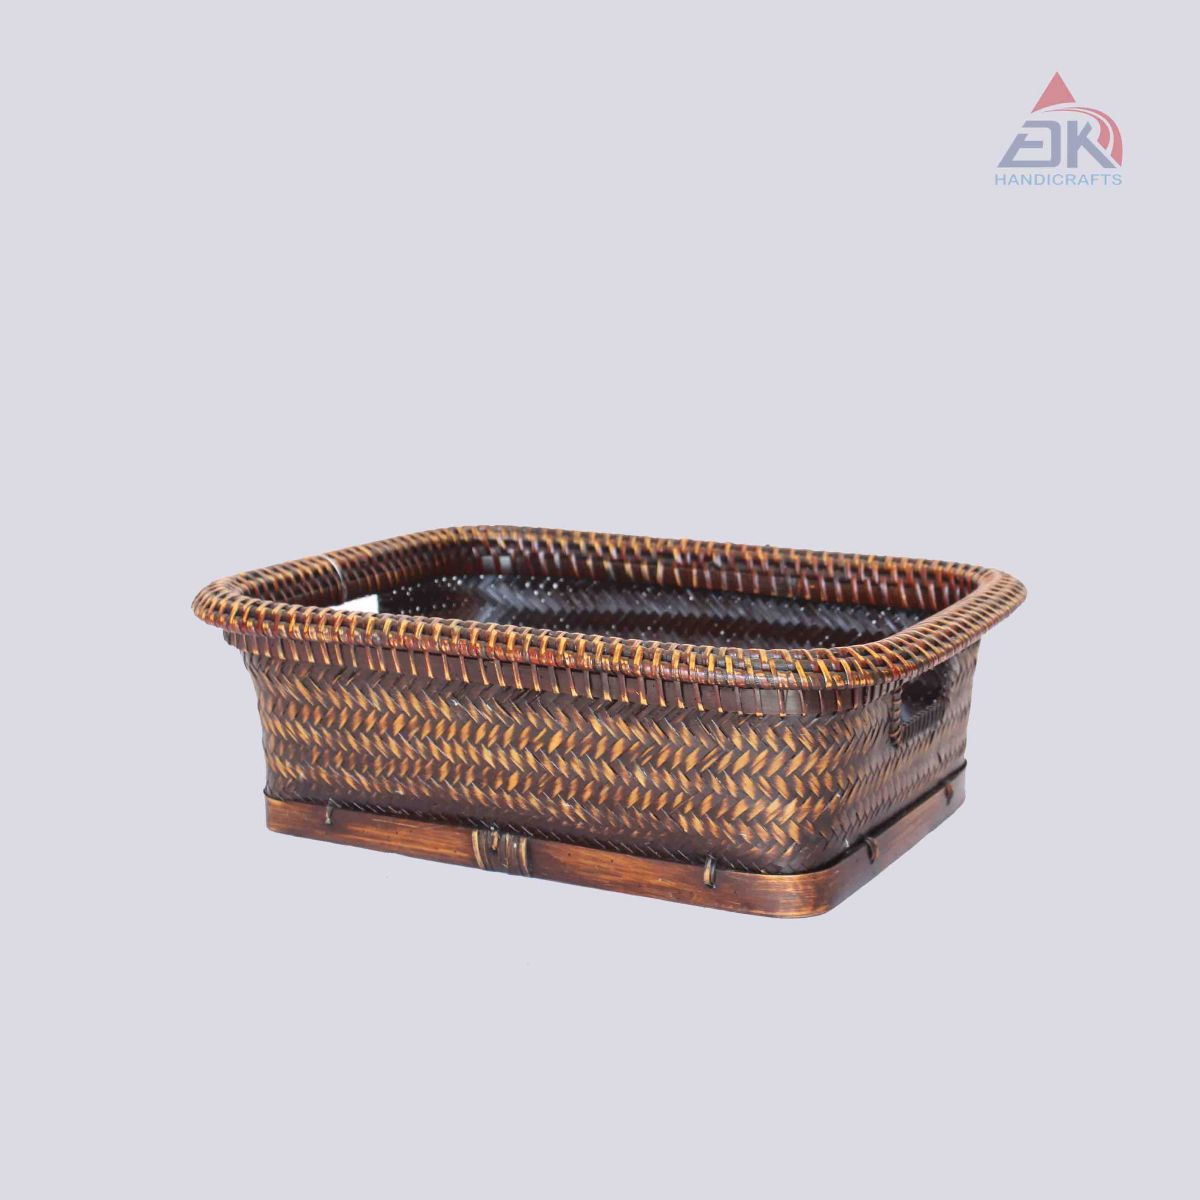 Bamboo Basket With Rattan Line